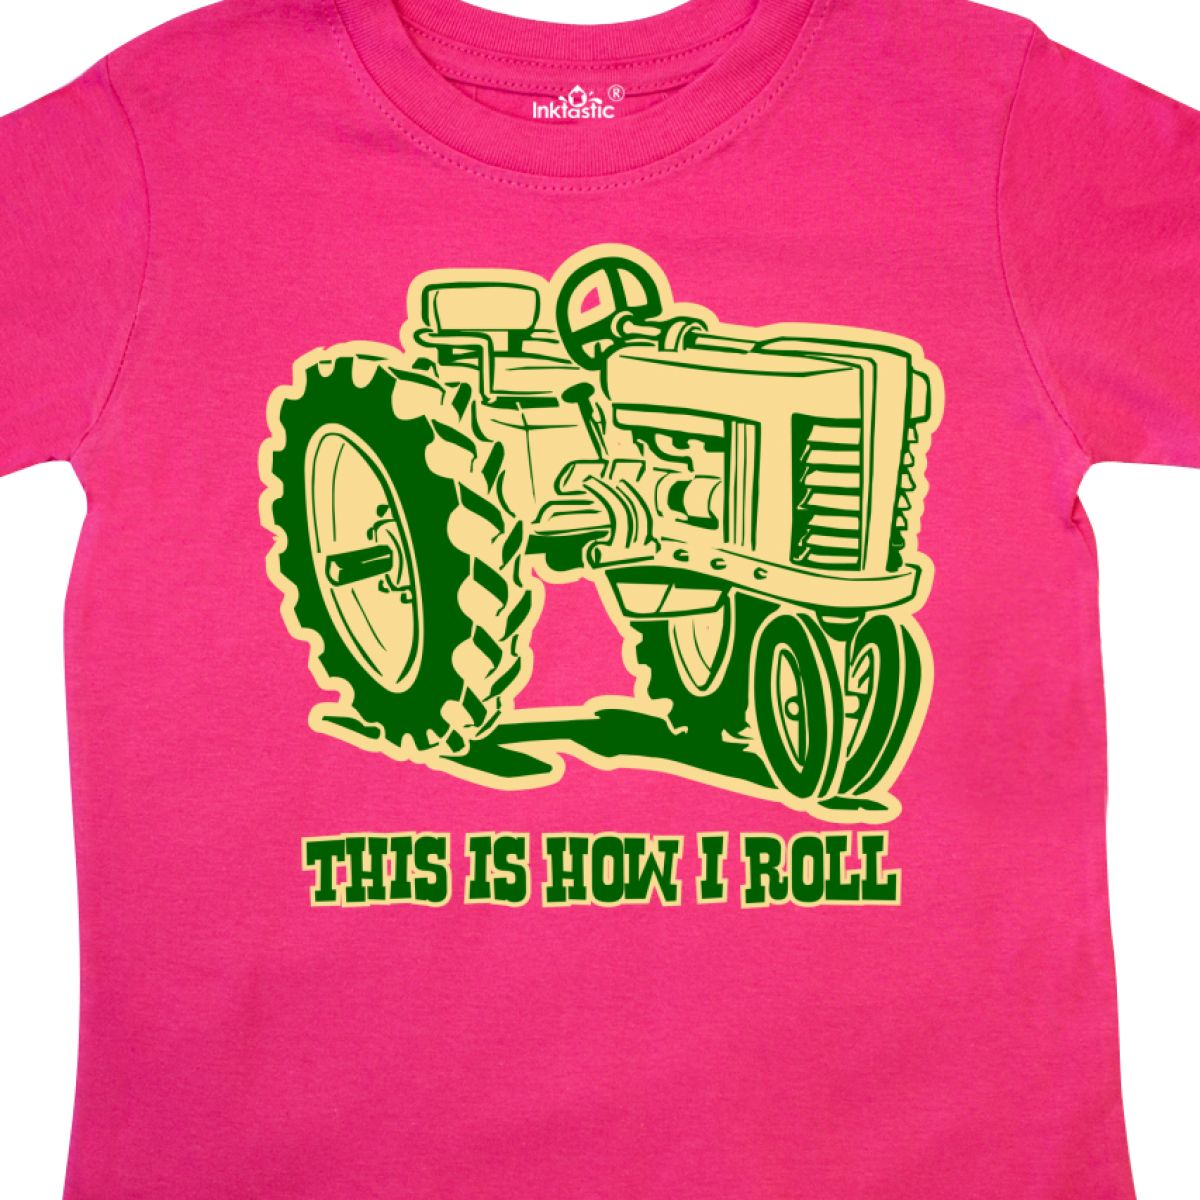 d41aa92c8 Inktastic This Is How I Roll Tractor GRN Toddler T-Shirt Green ...